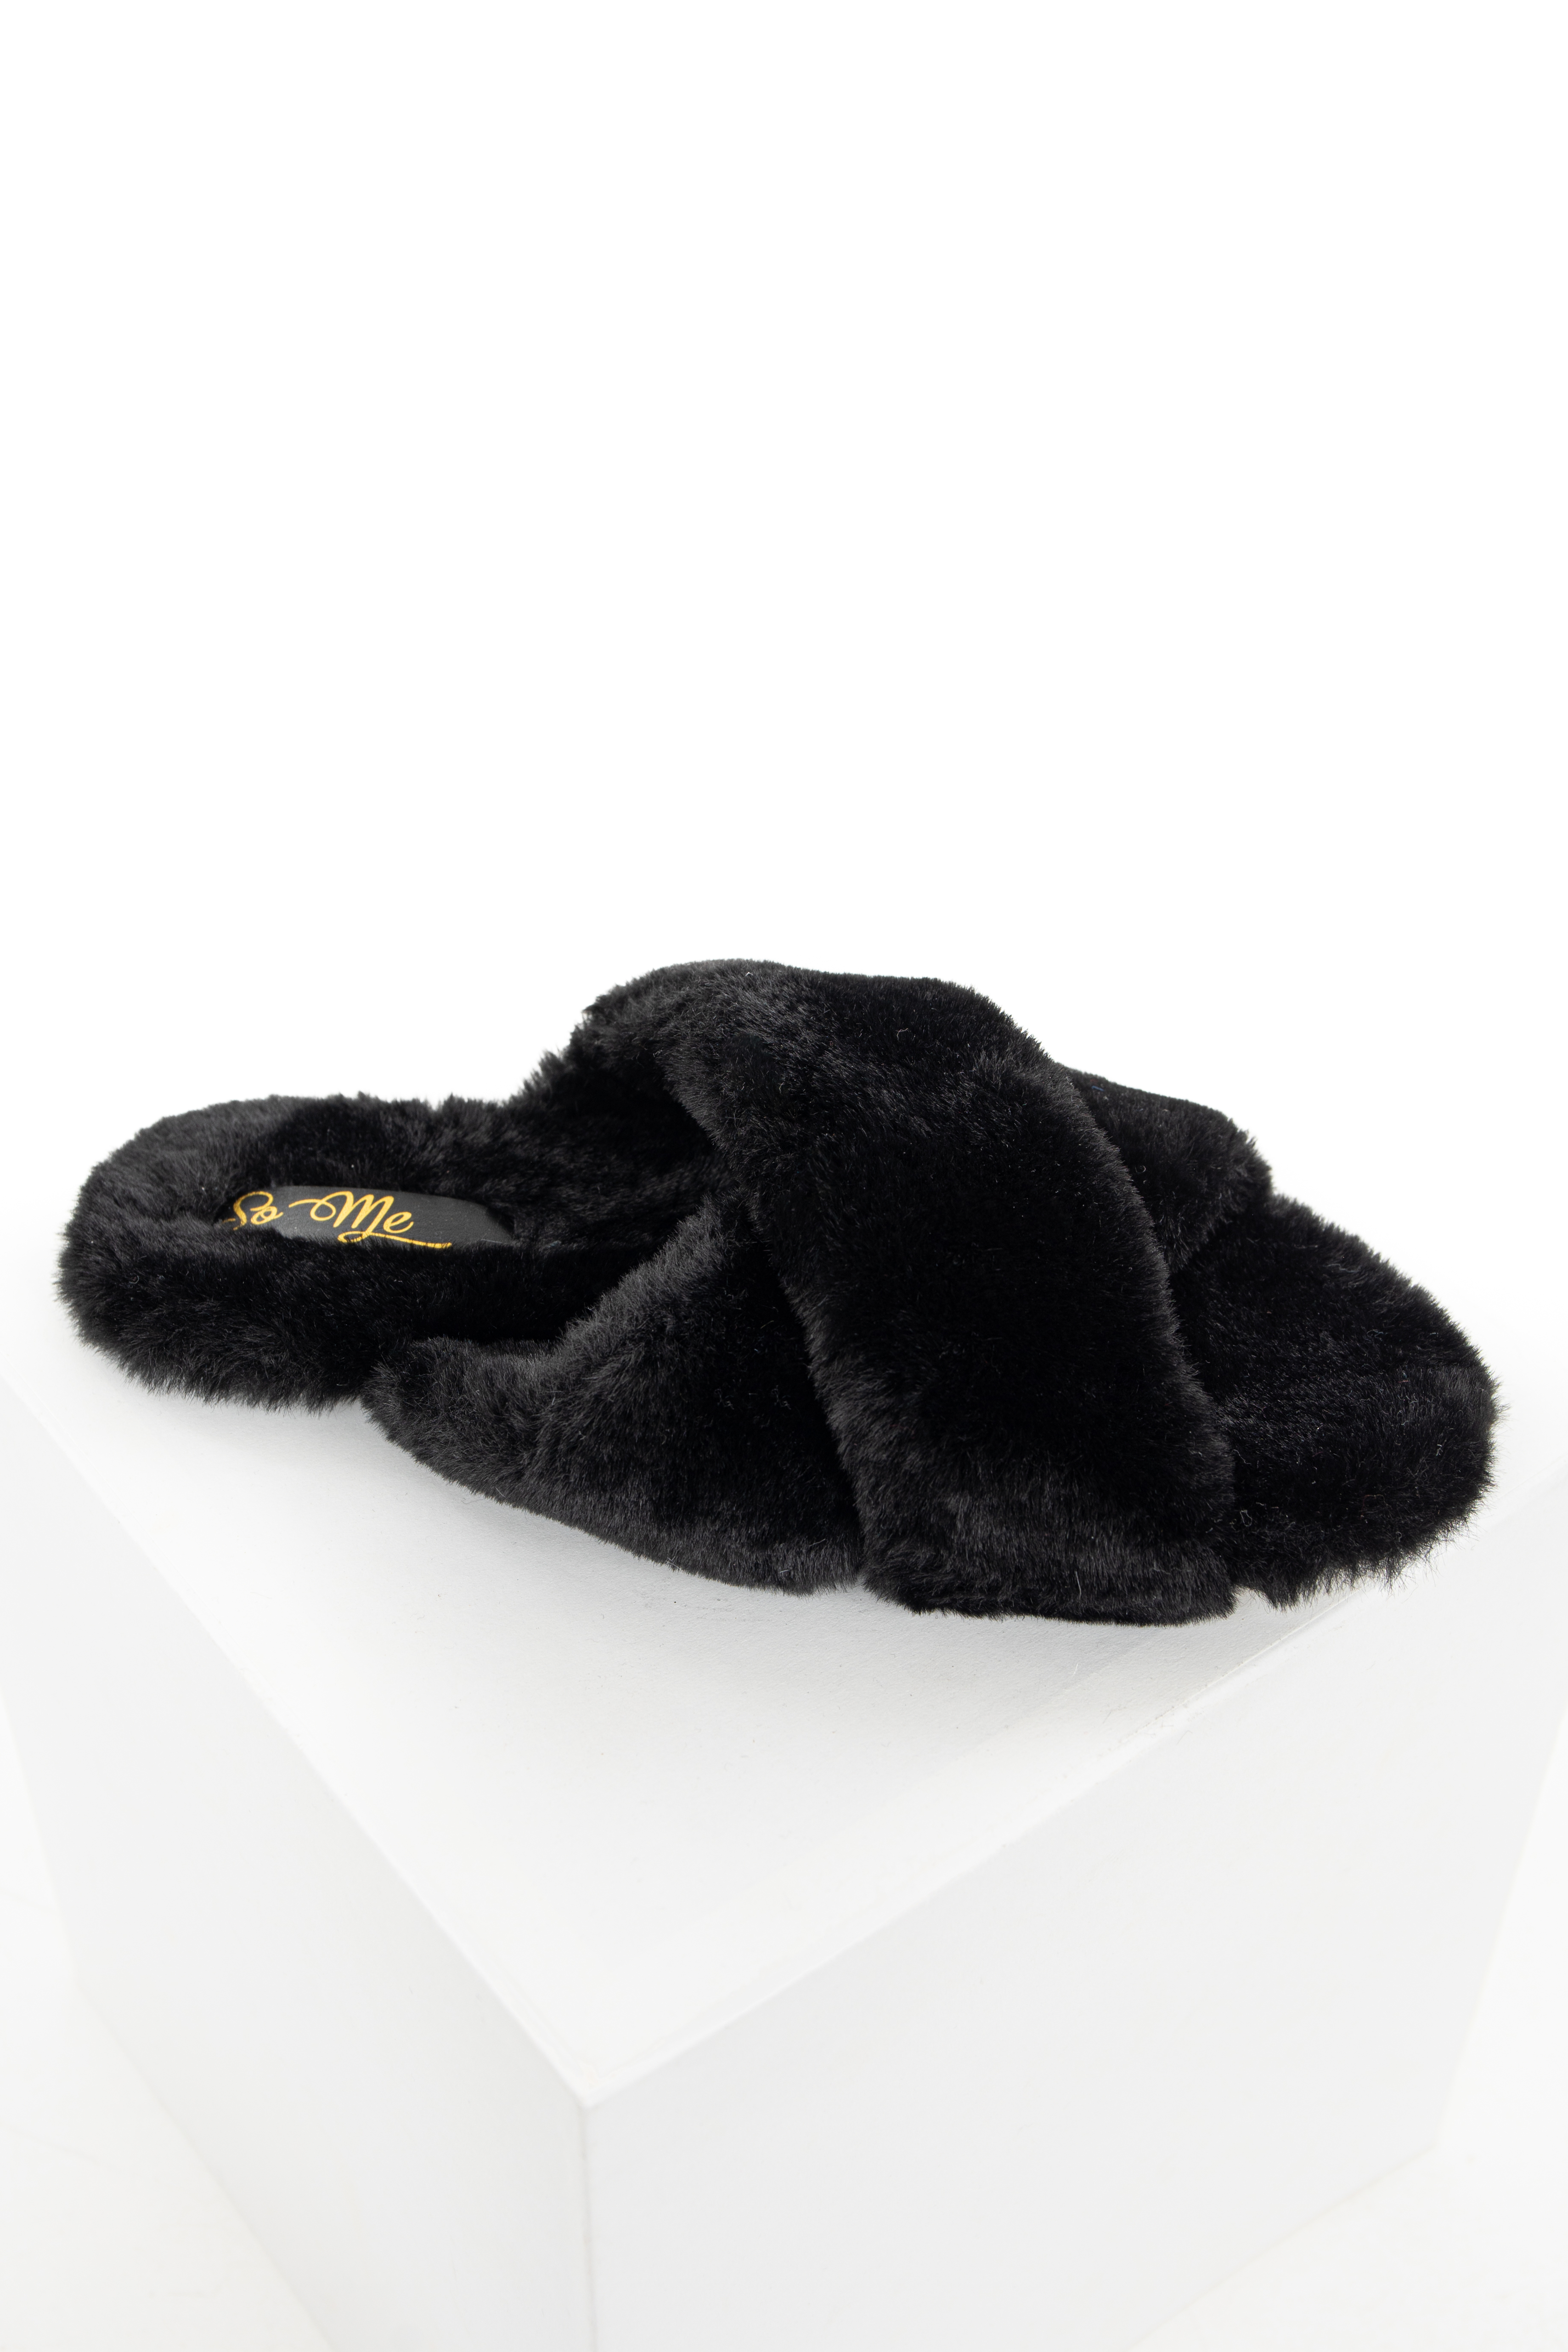 Black Fuzzy Open Toed Slippers with Criss Cross Tops